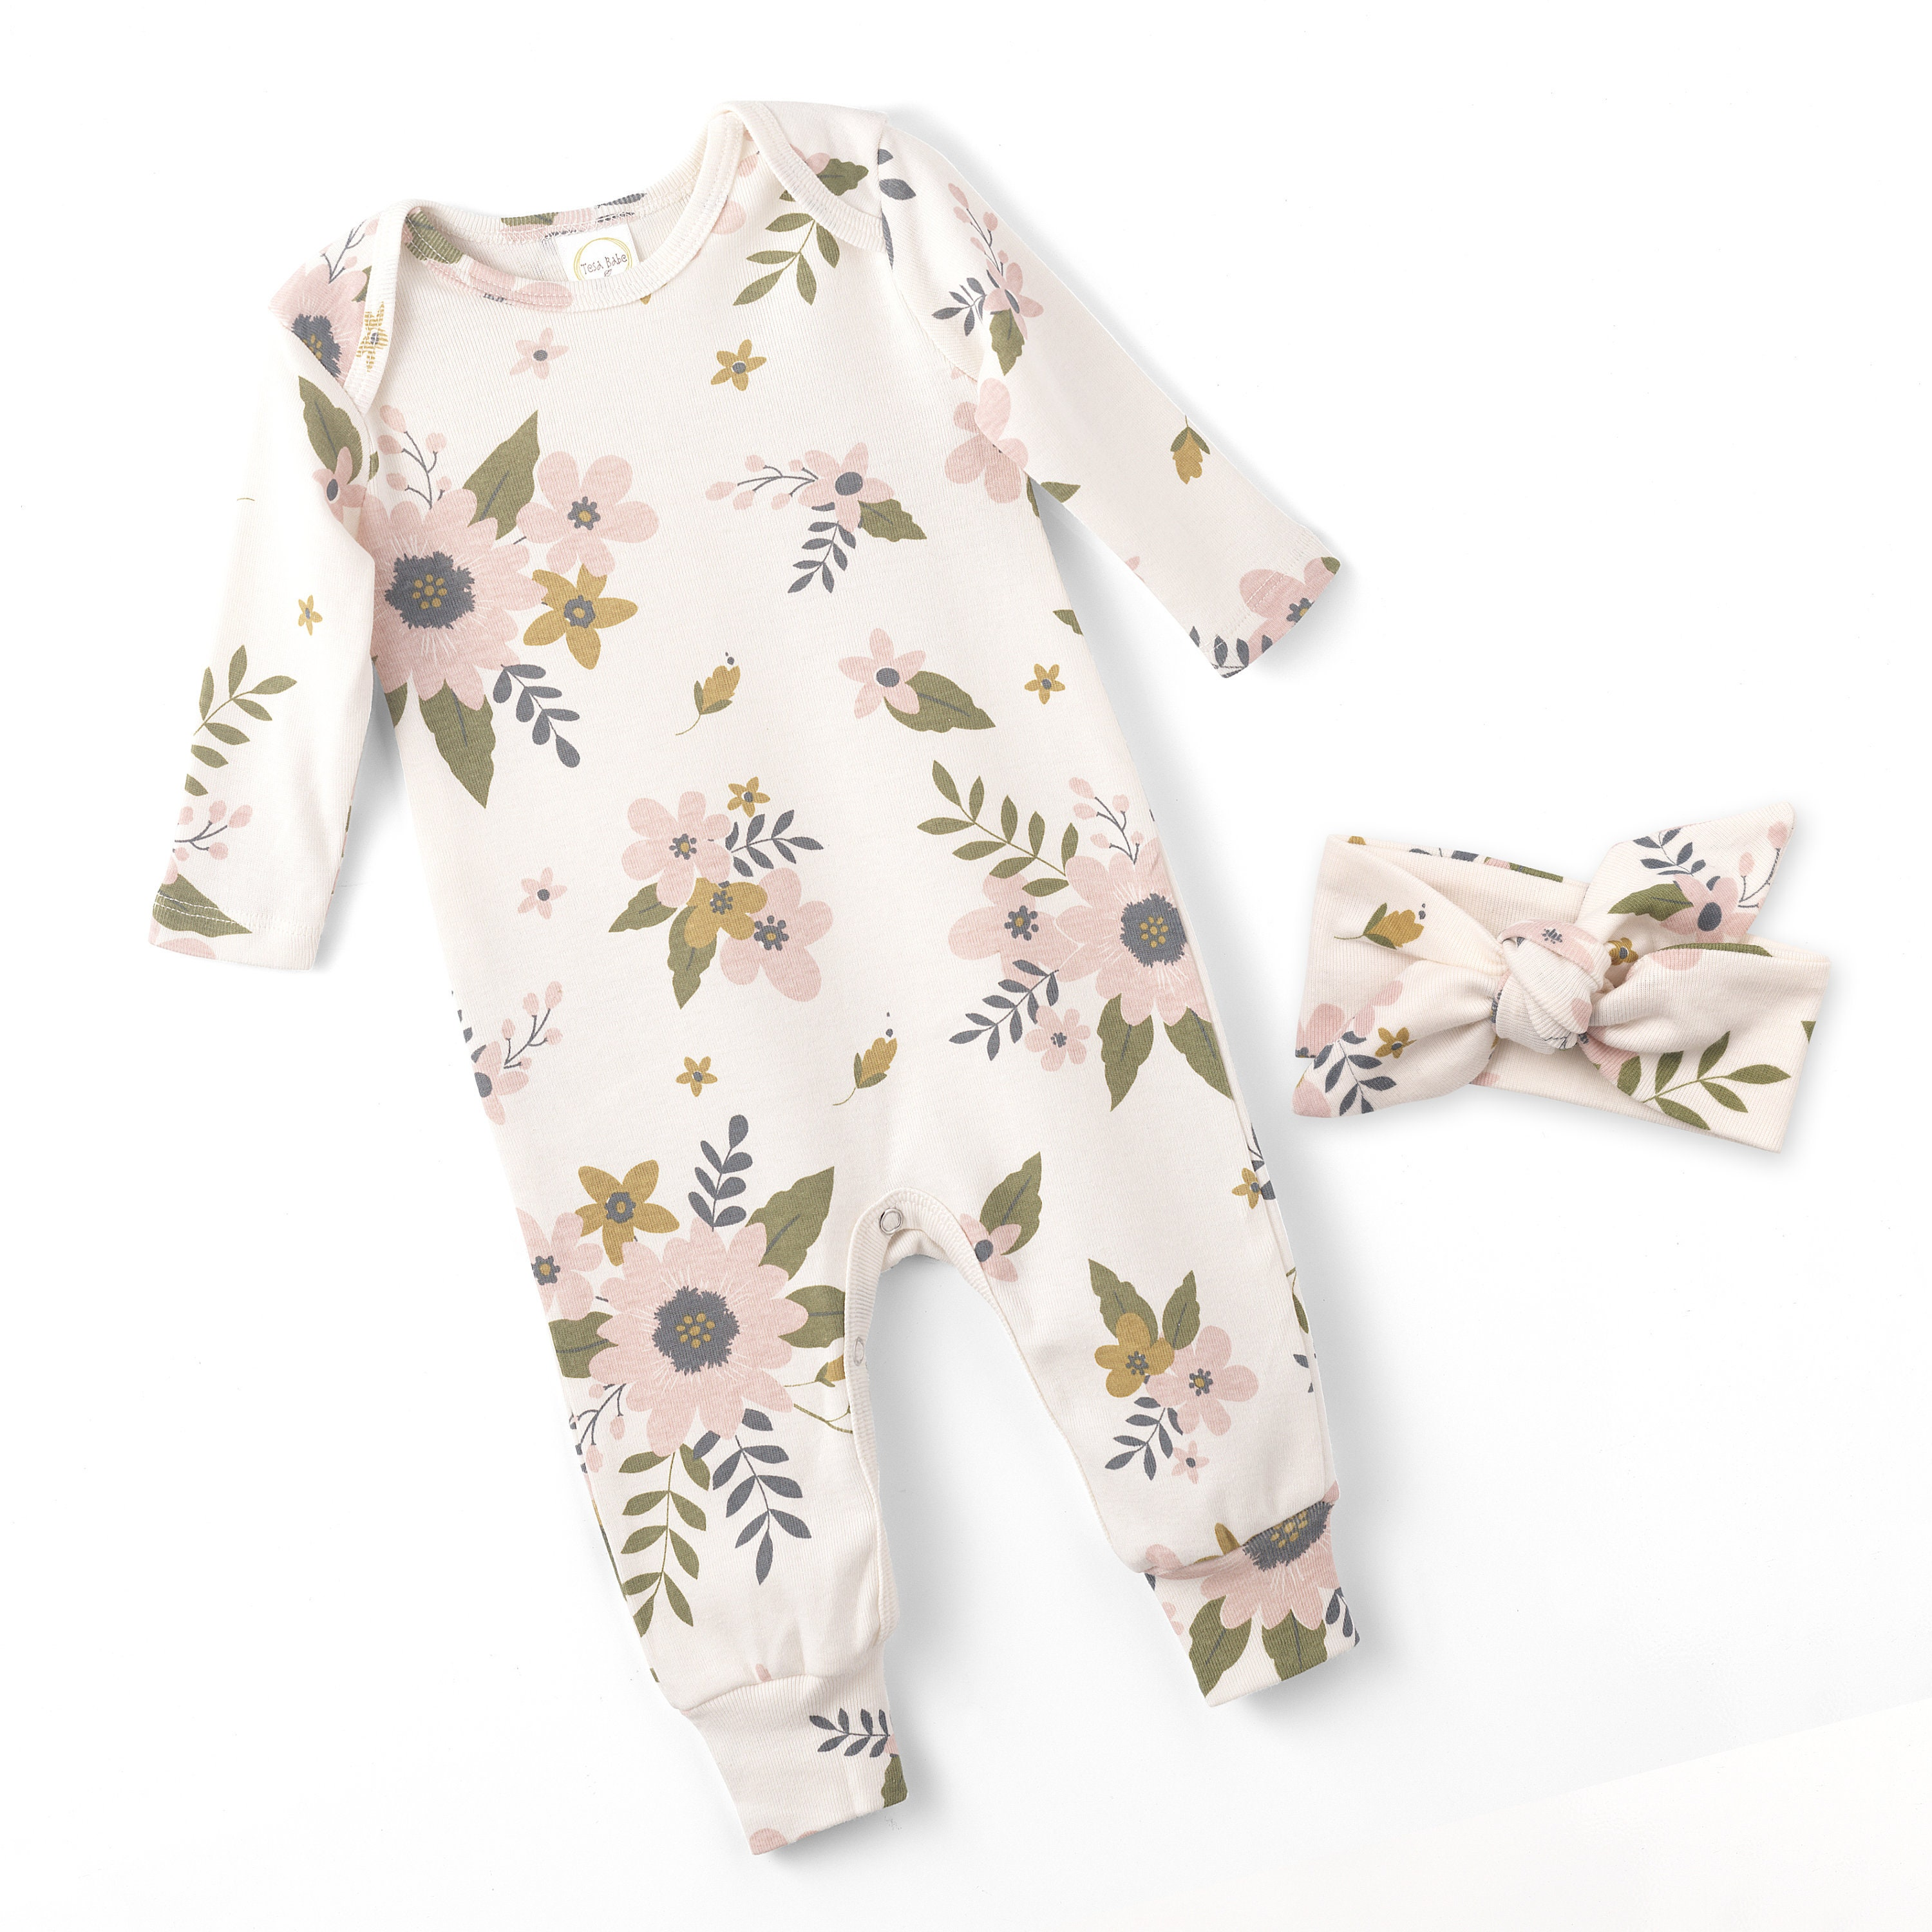 be5d34e4a3d8 Newborn Baby Girl Coming Home Outfit